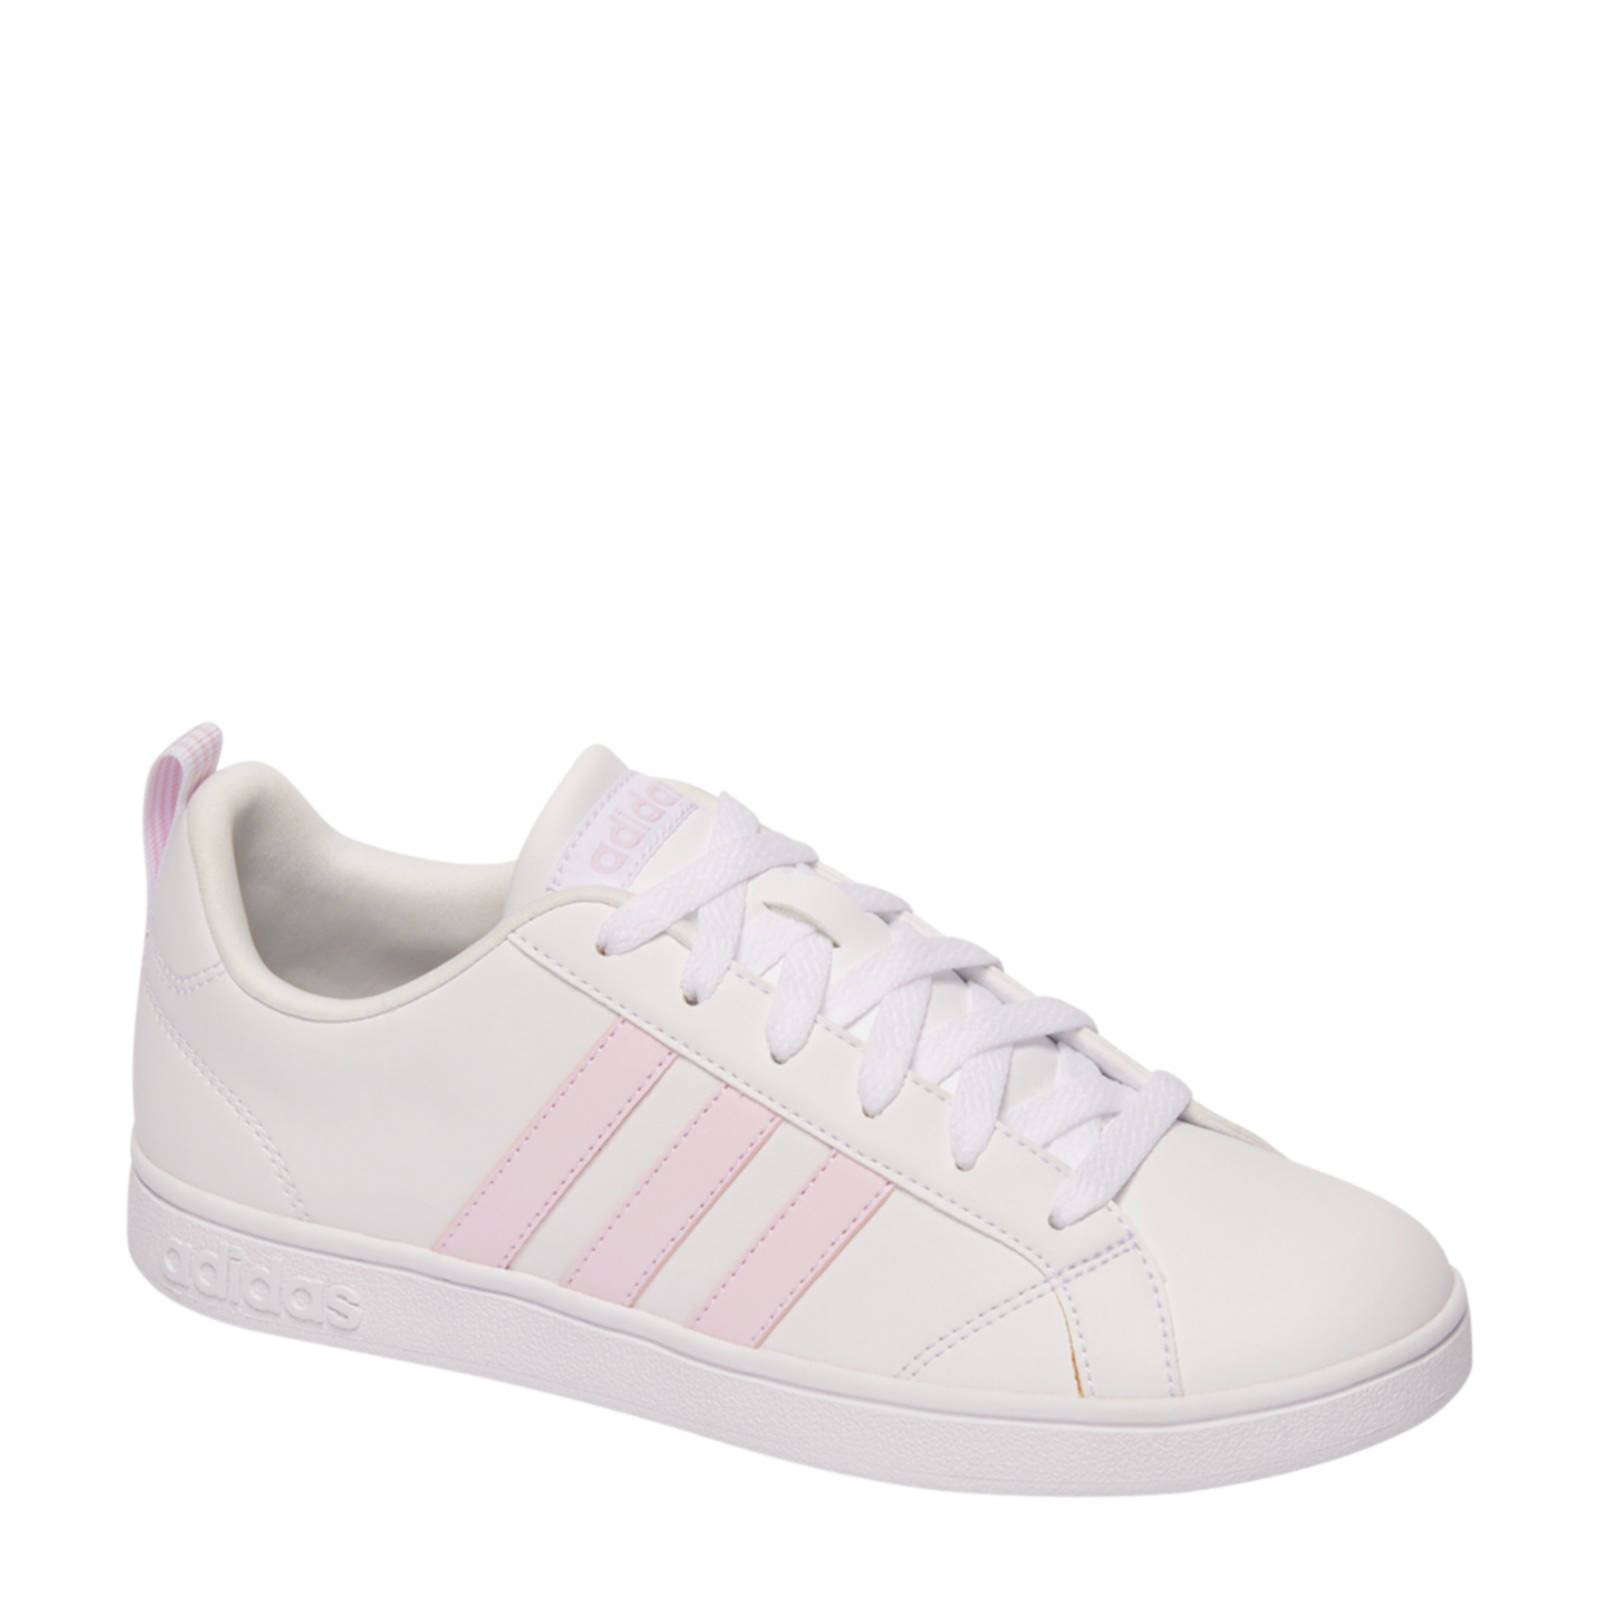 adidas Originals VS Advantage sneakers wit/roze | wehkamp